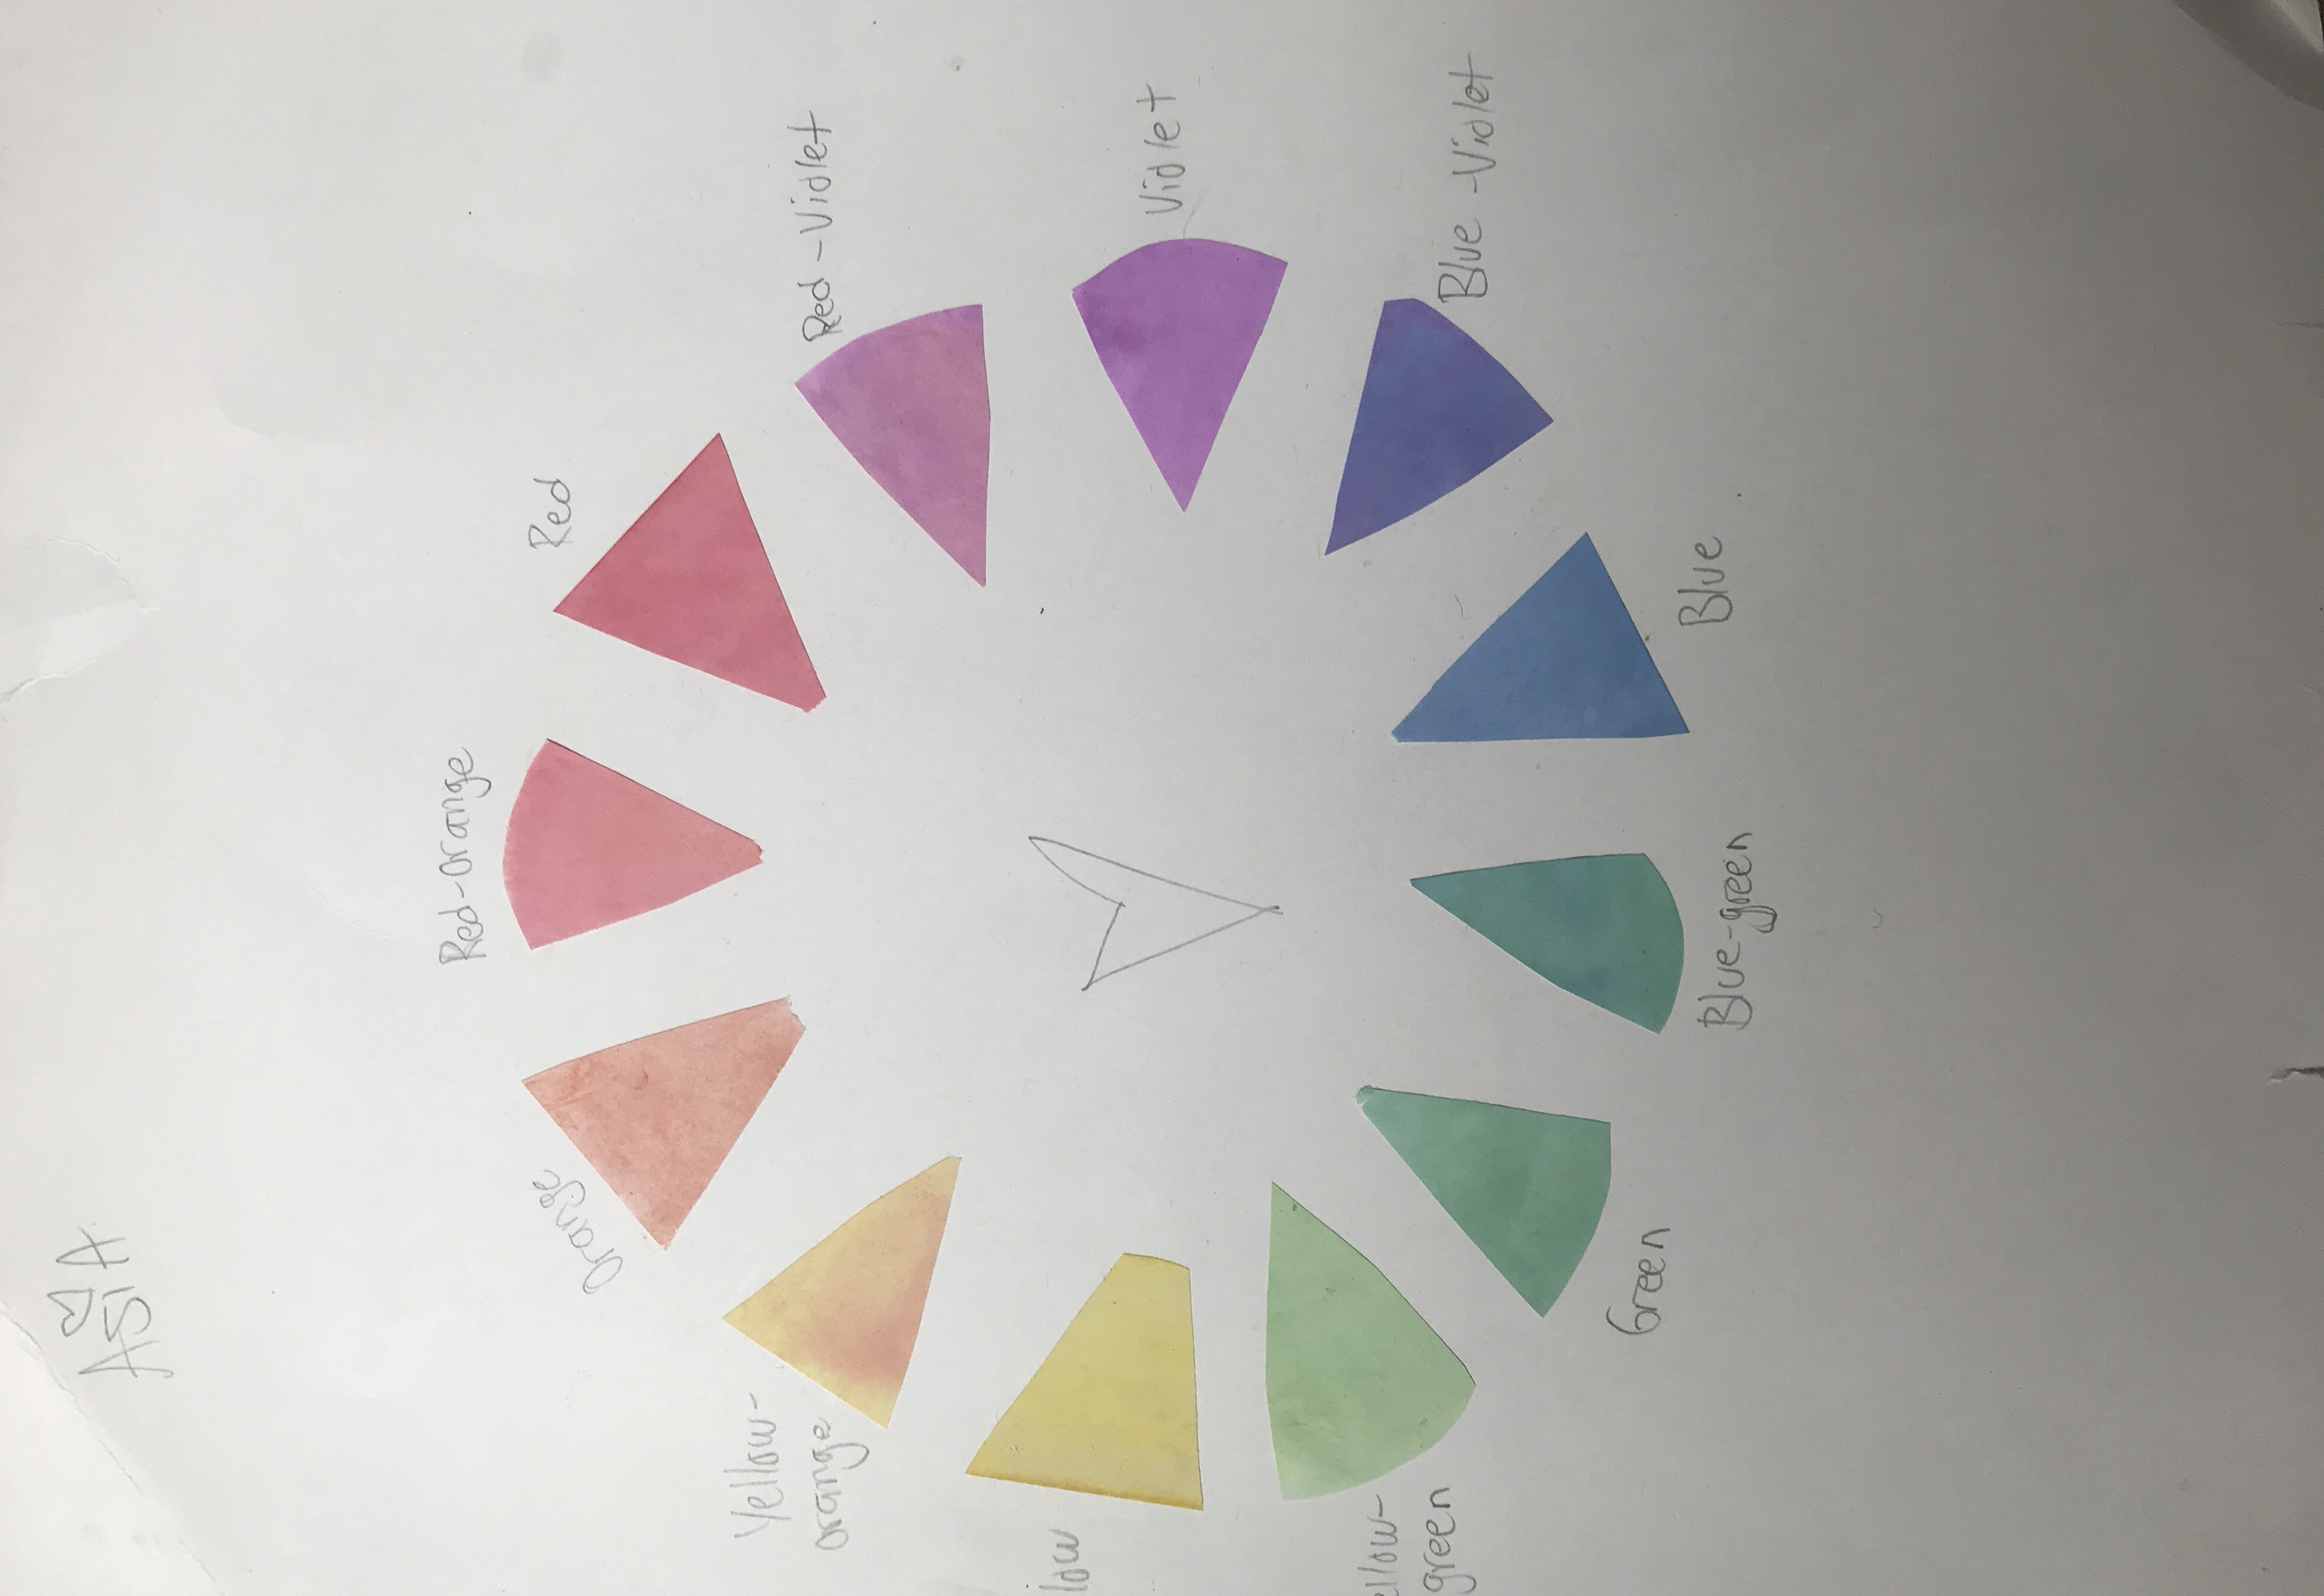 CITY_Asia_Damdar_ColourWheel.jpg